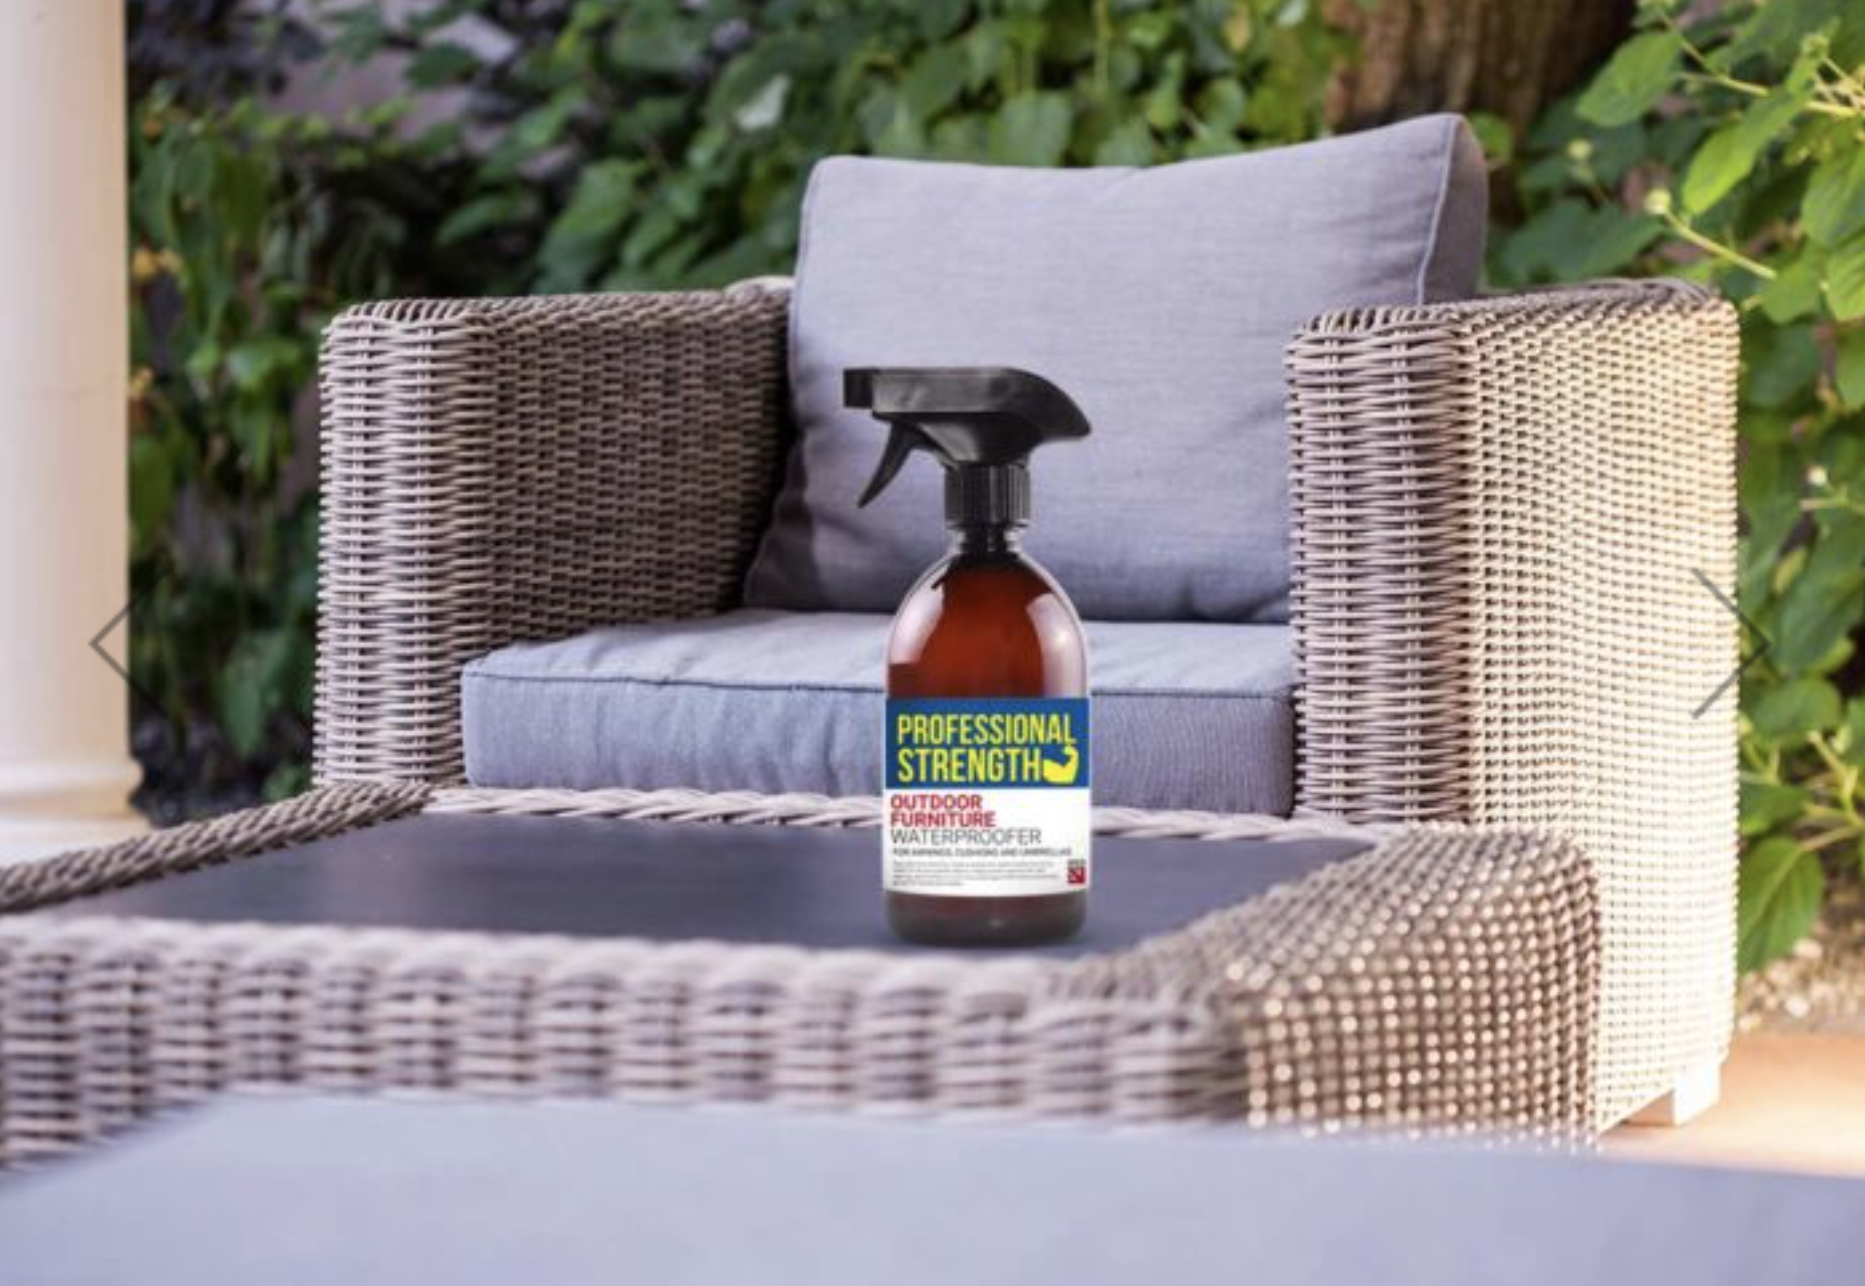 Professional Strength Outdoor Furniture Protector